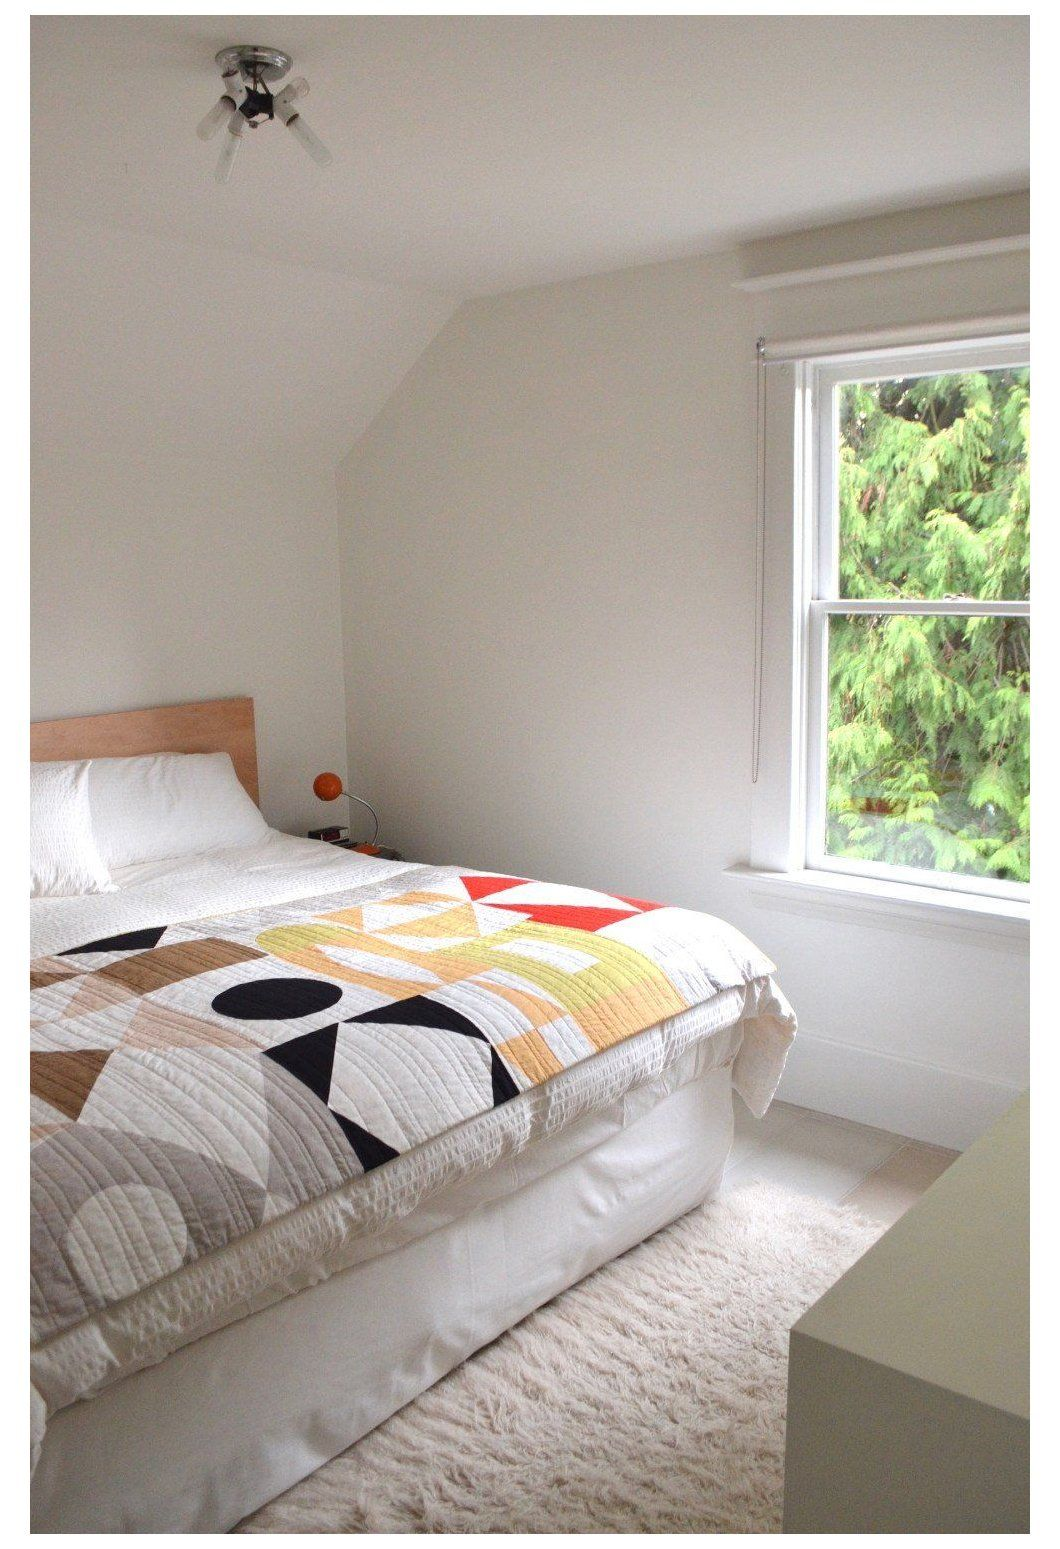 Modern Quilts In Modern Interiors As Someone Who Gravitates Toward Minimal Scandinavian Inspired Int In 2020 Modern Quilting Designs Modern Quilts Scandinavian Quilts